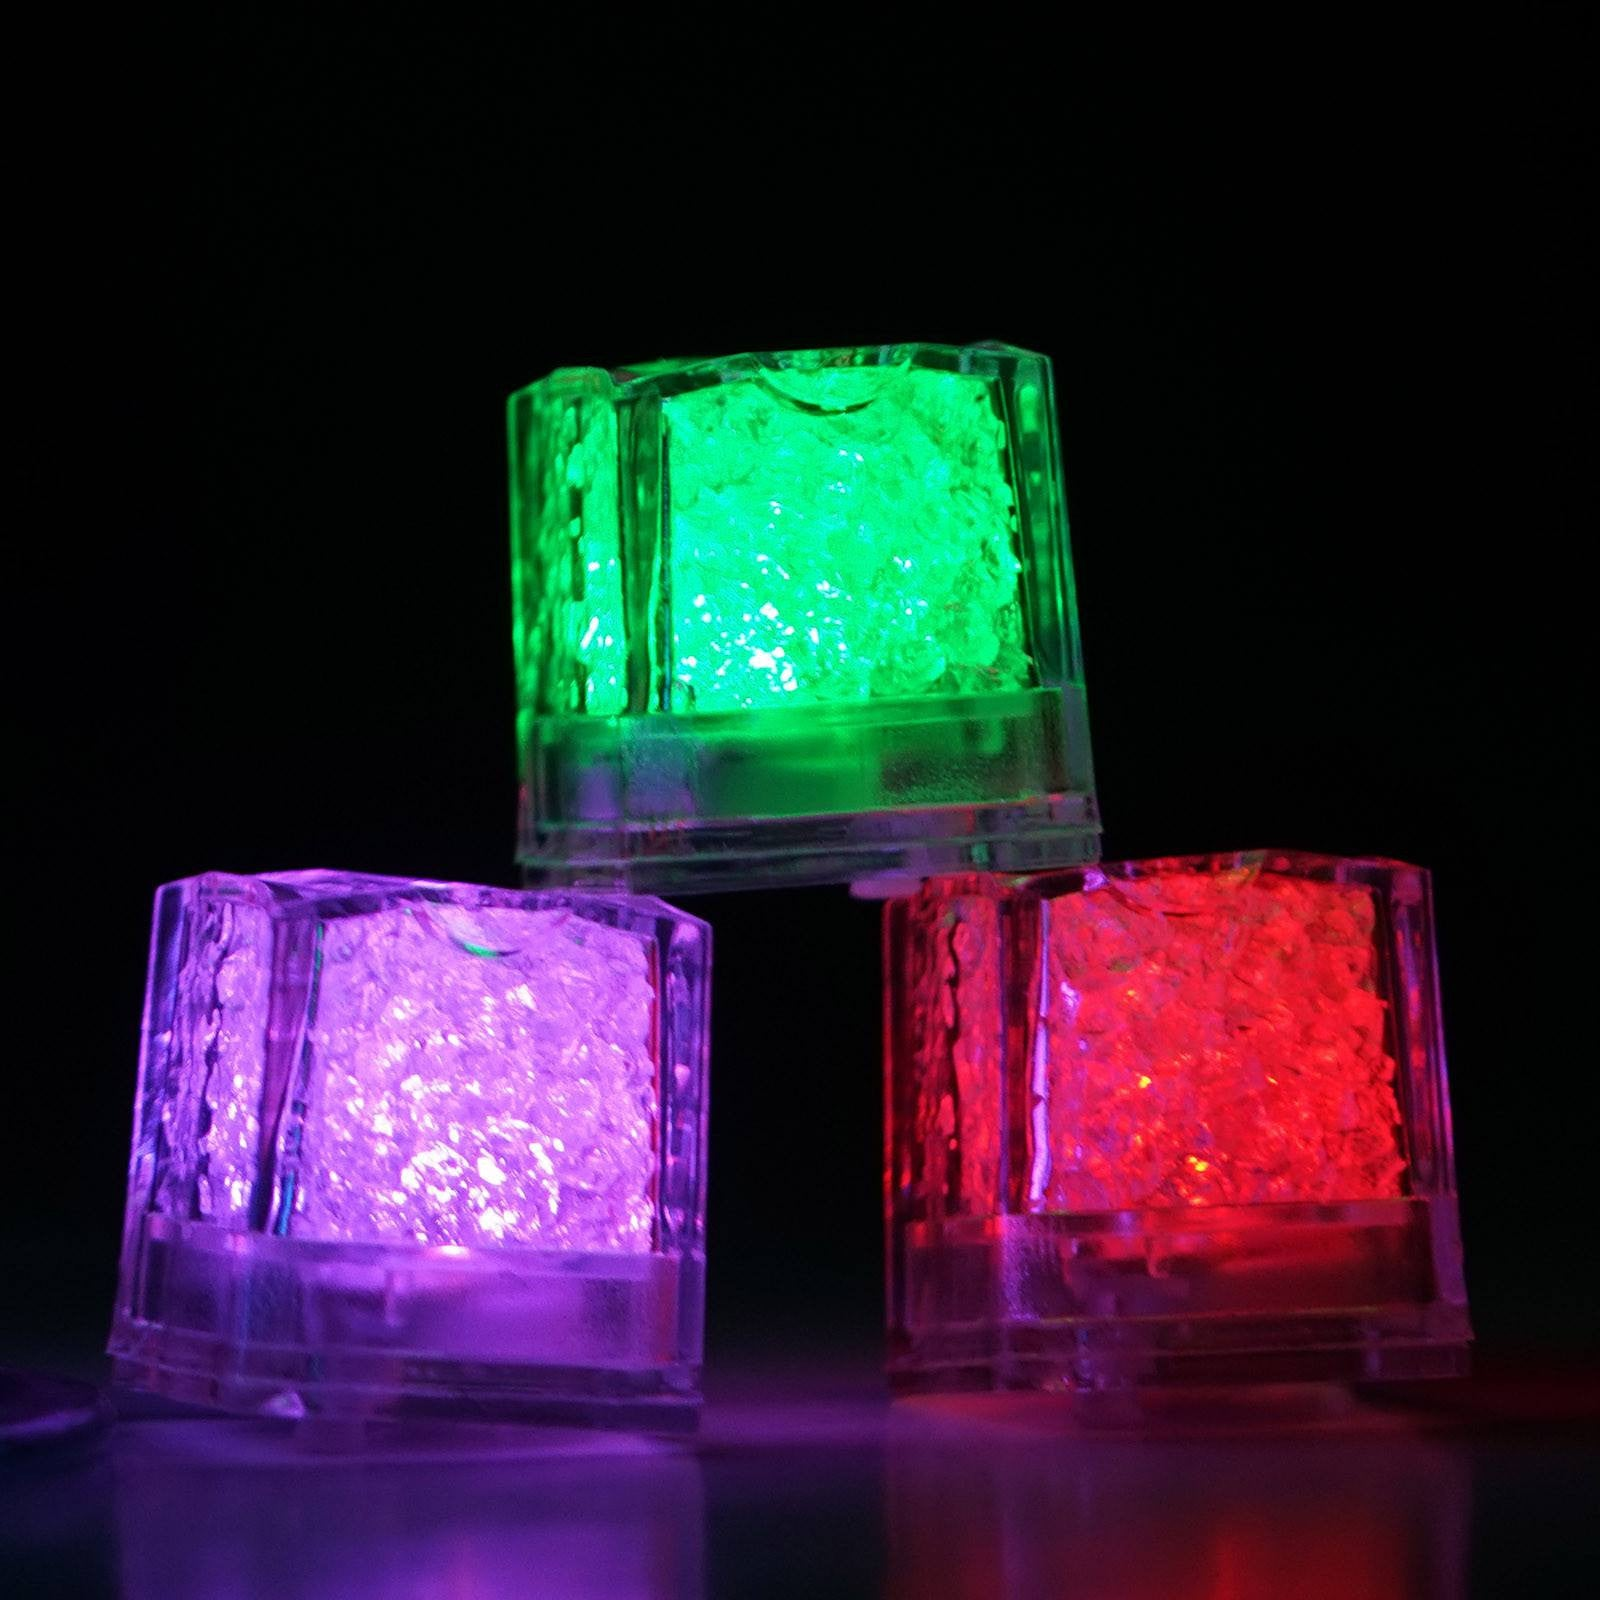 12 Pack 7 Color Changing Light Up Led Submersible